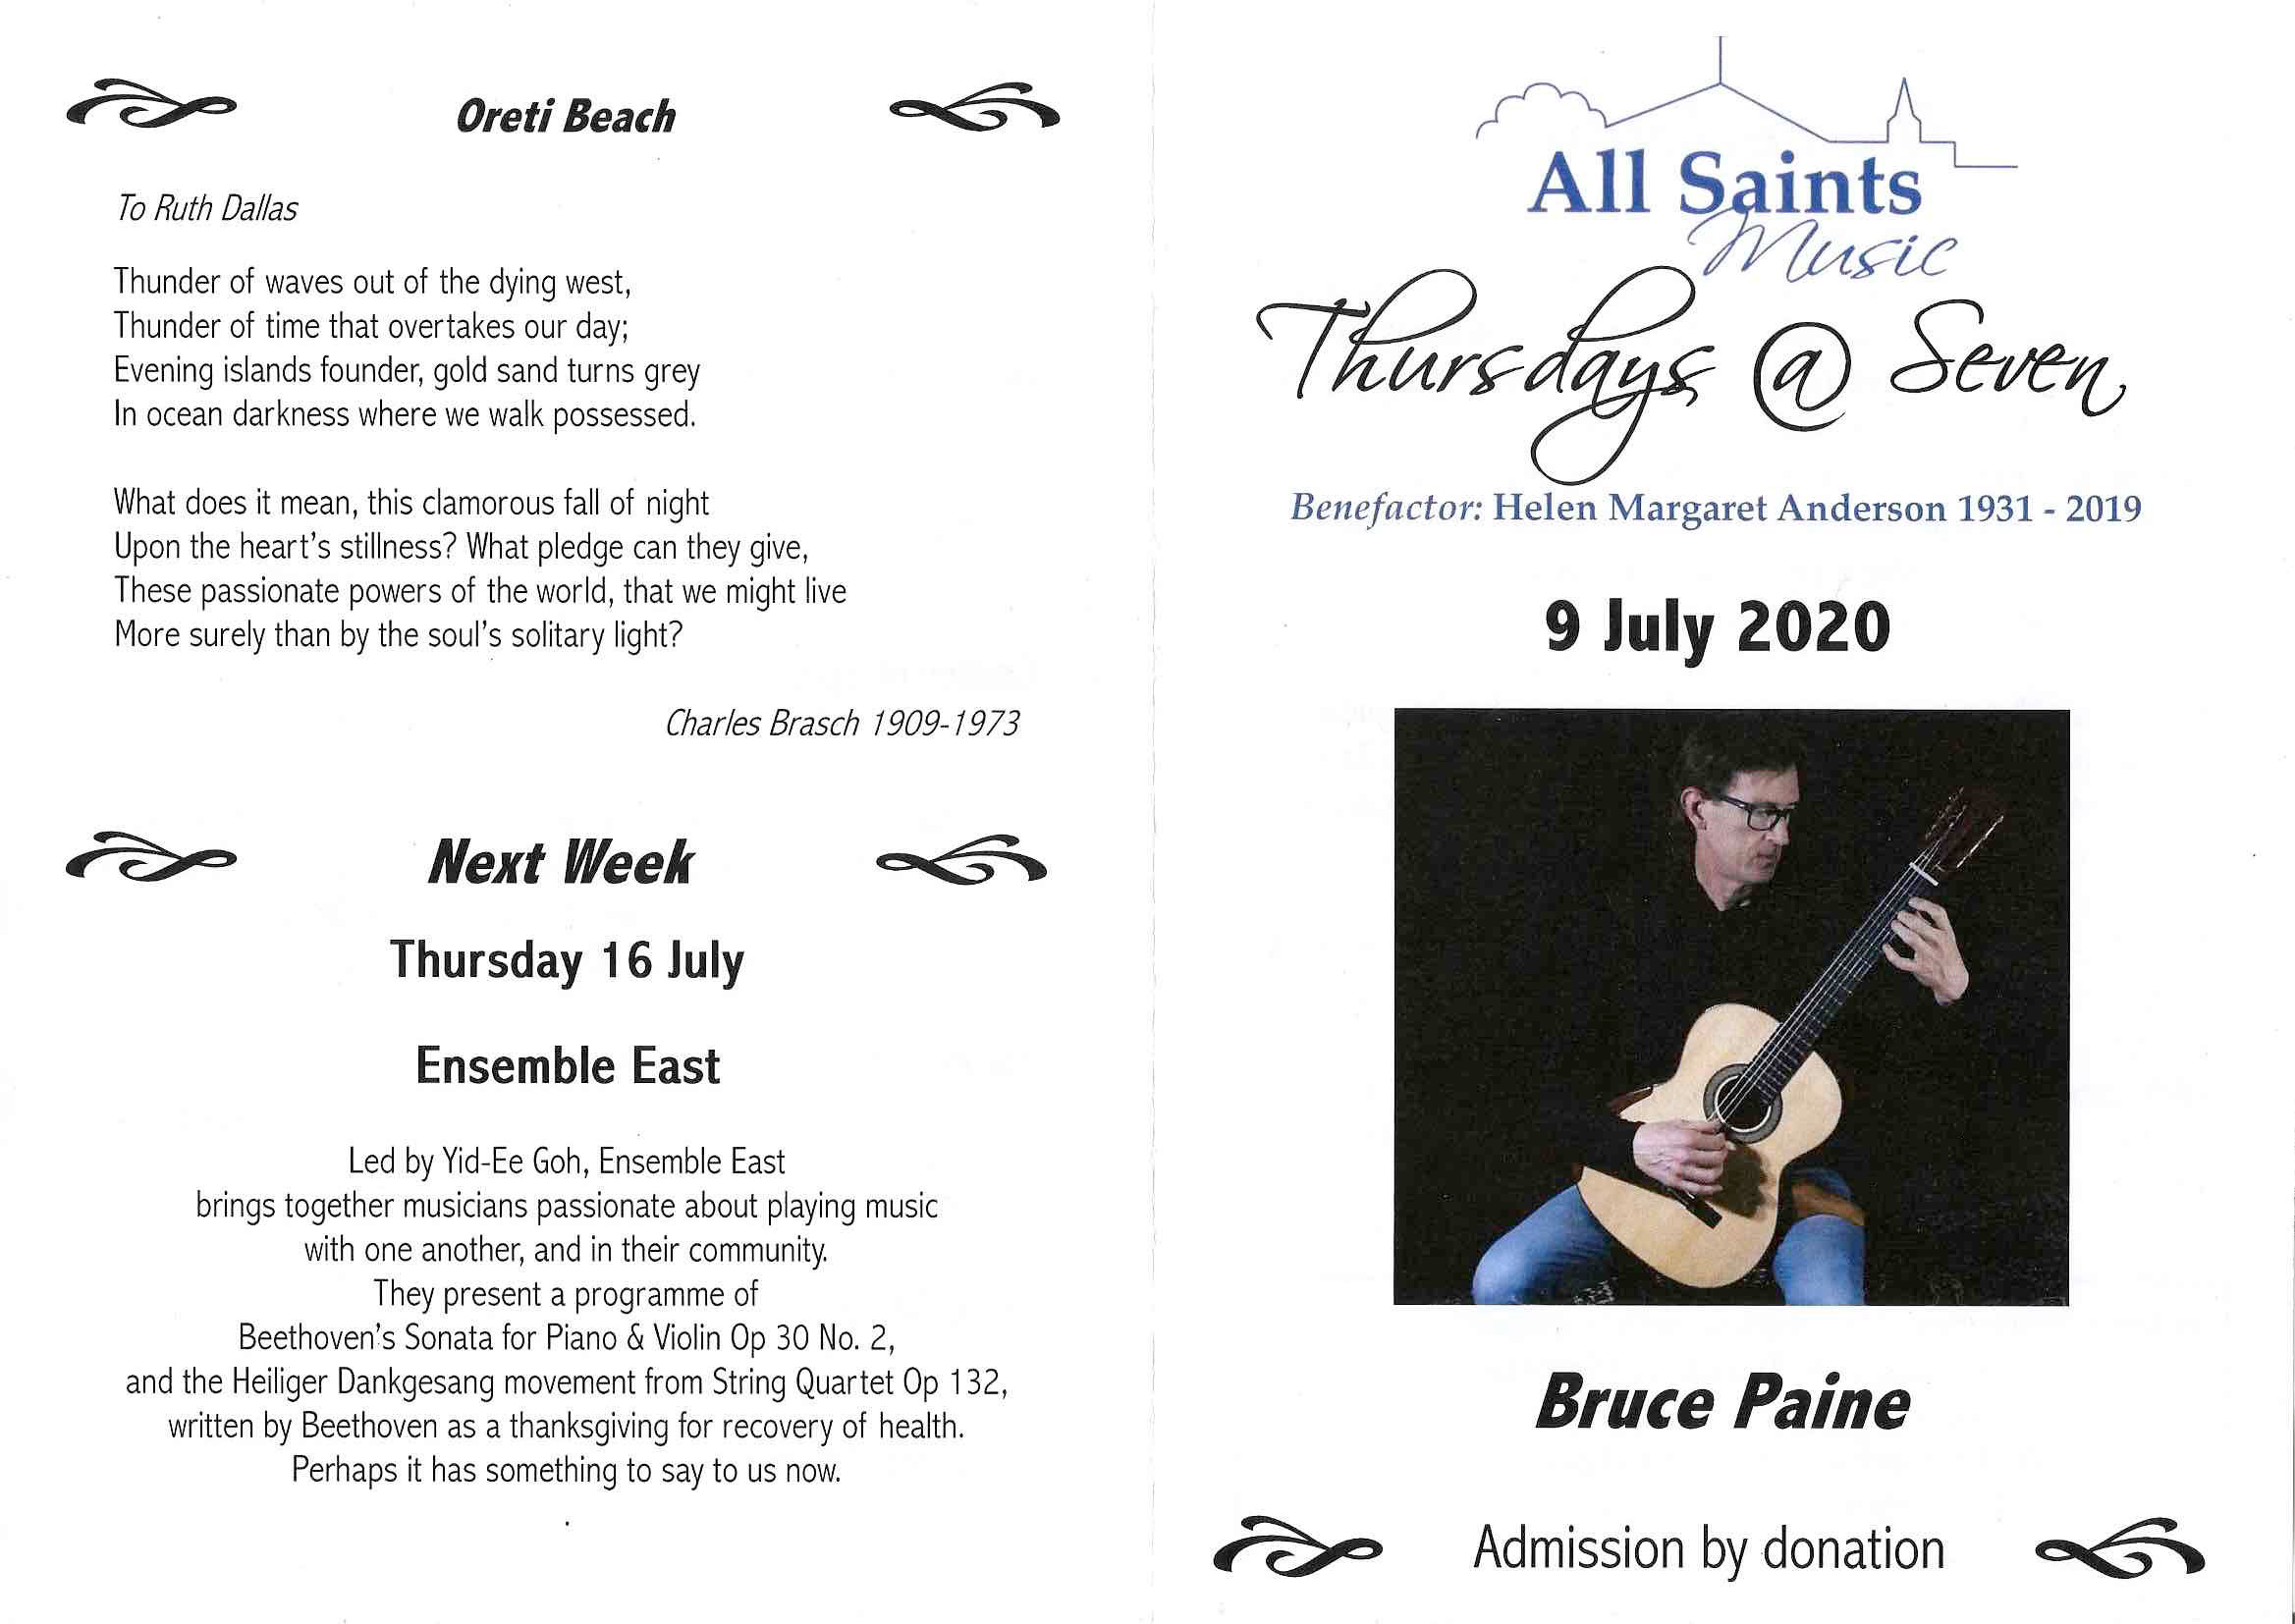 Bruce Paine, Howick Concert, July 9th 2020